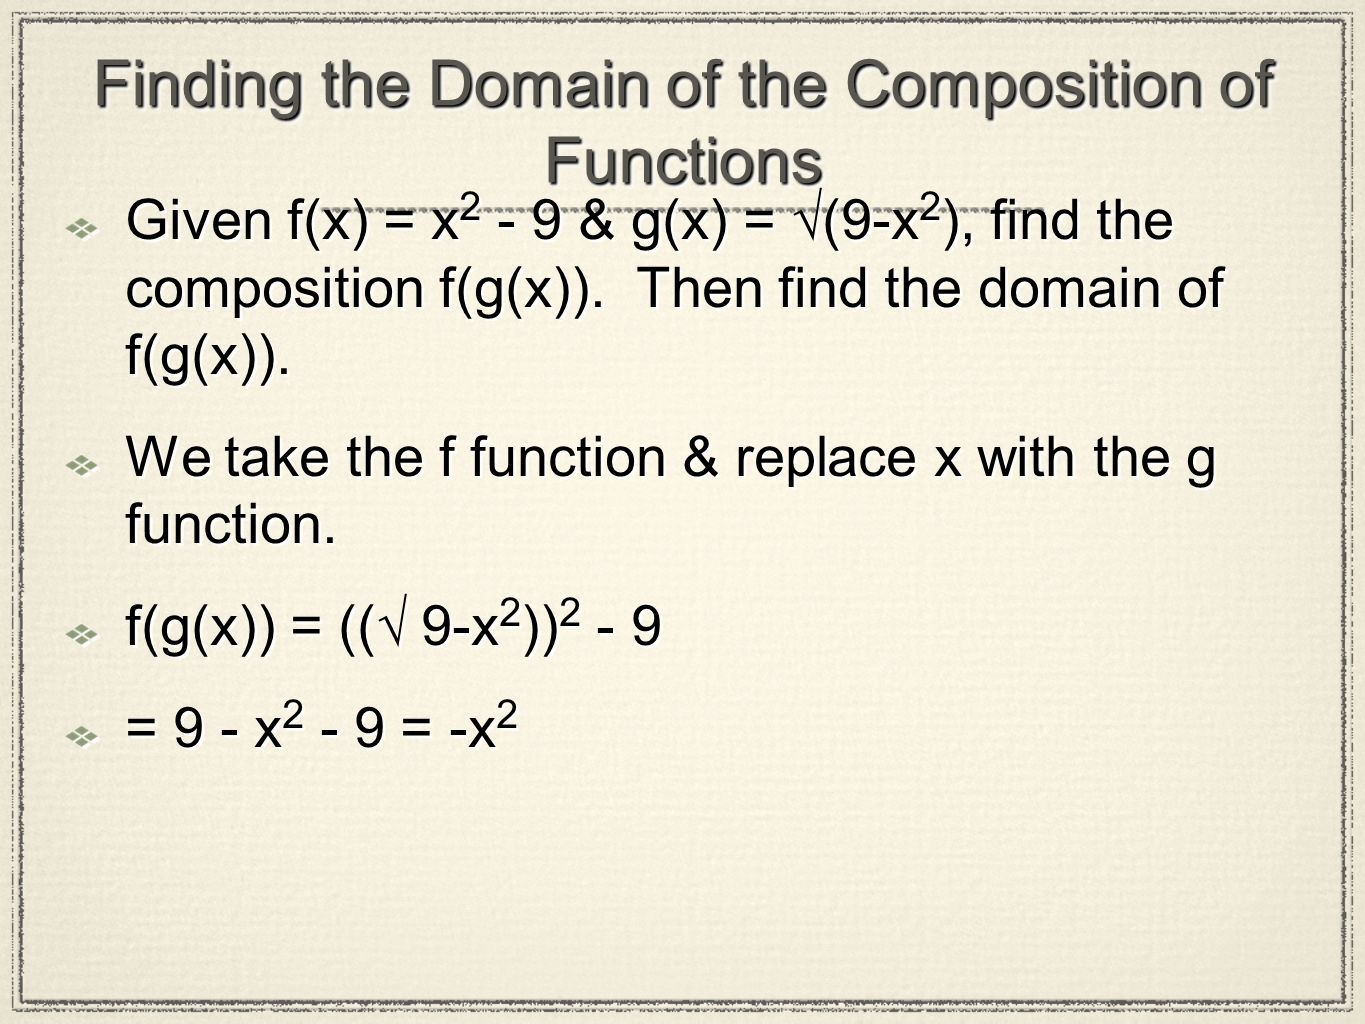 Finding the Domain of the Composition of Functions